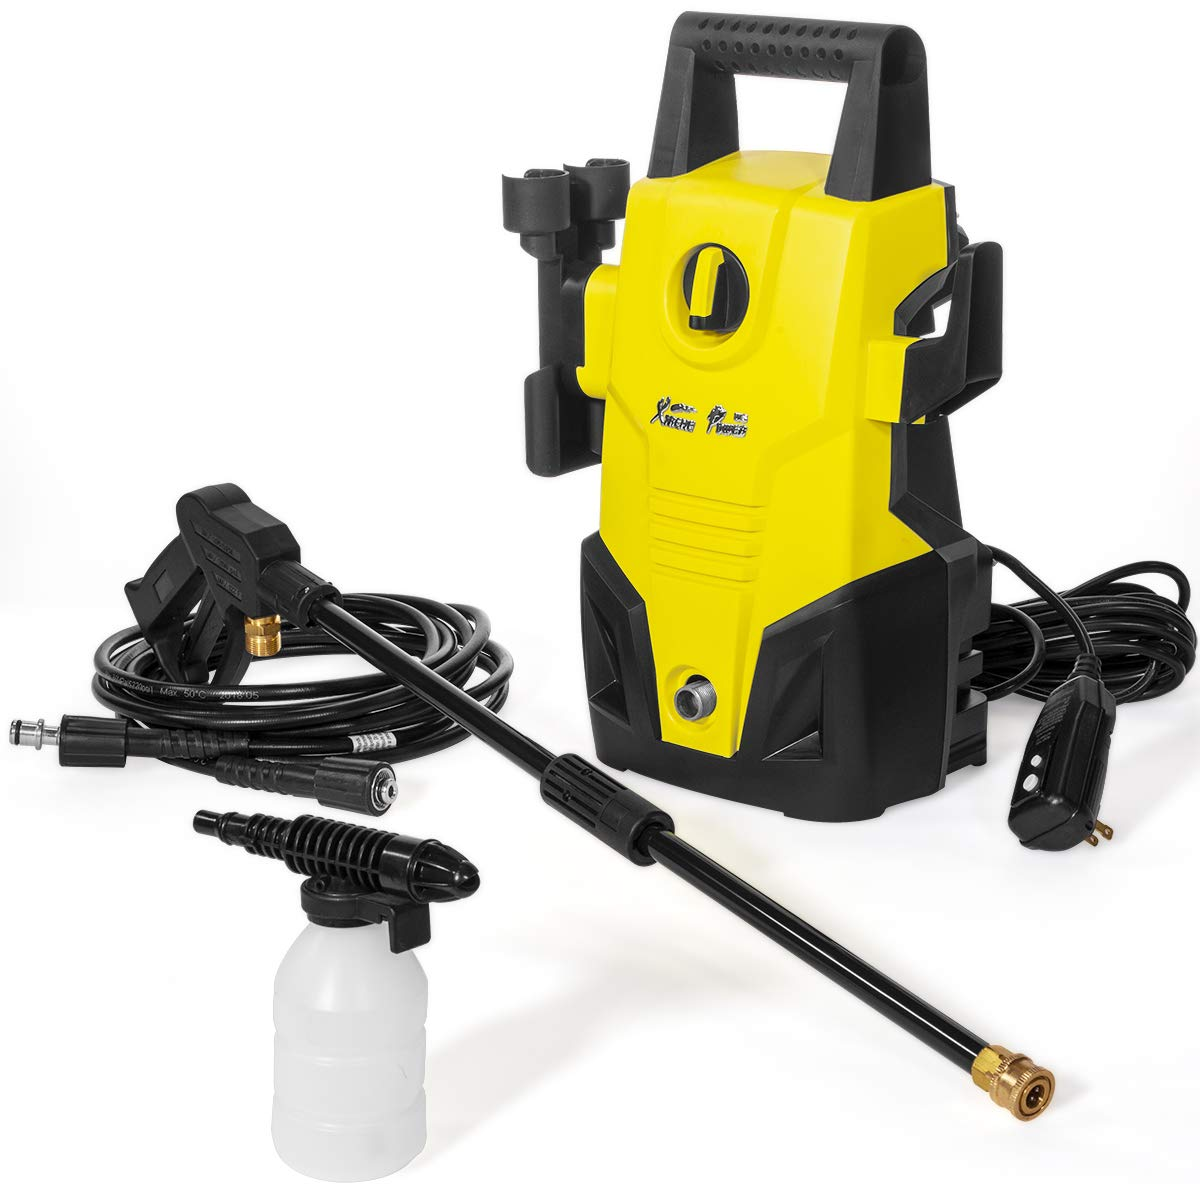 XtremepowerUS 61032 Jet 1300 PSI 1.2 GPM Sprayer Mini Electric Pressure Washer Cleaner Machine Soap Dispenser, Yellow